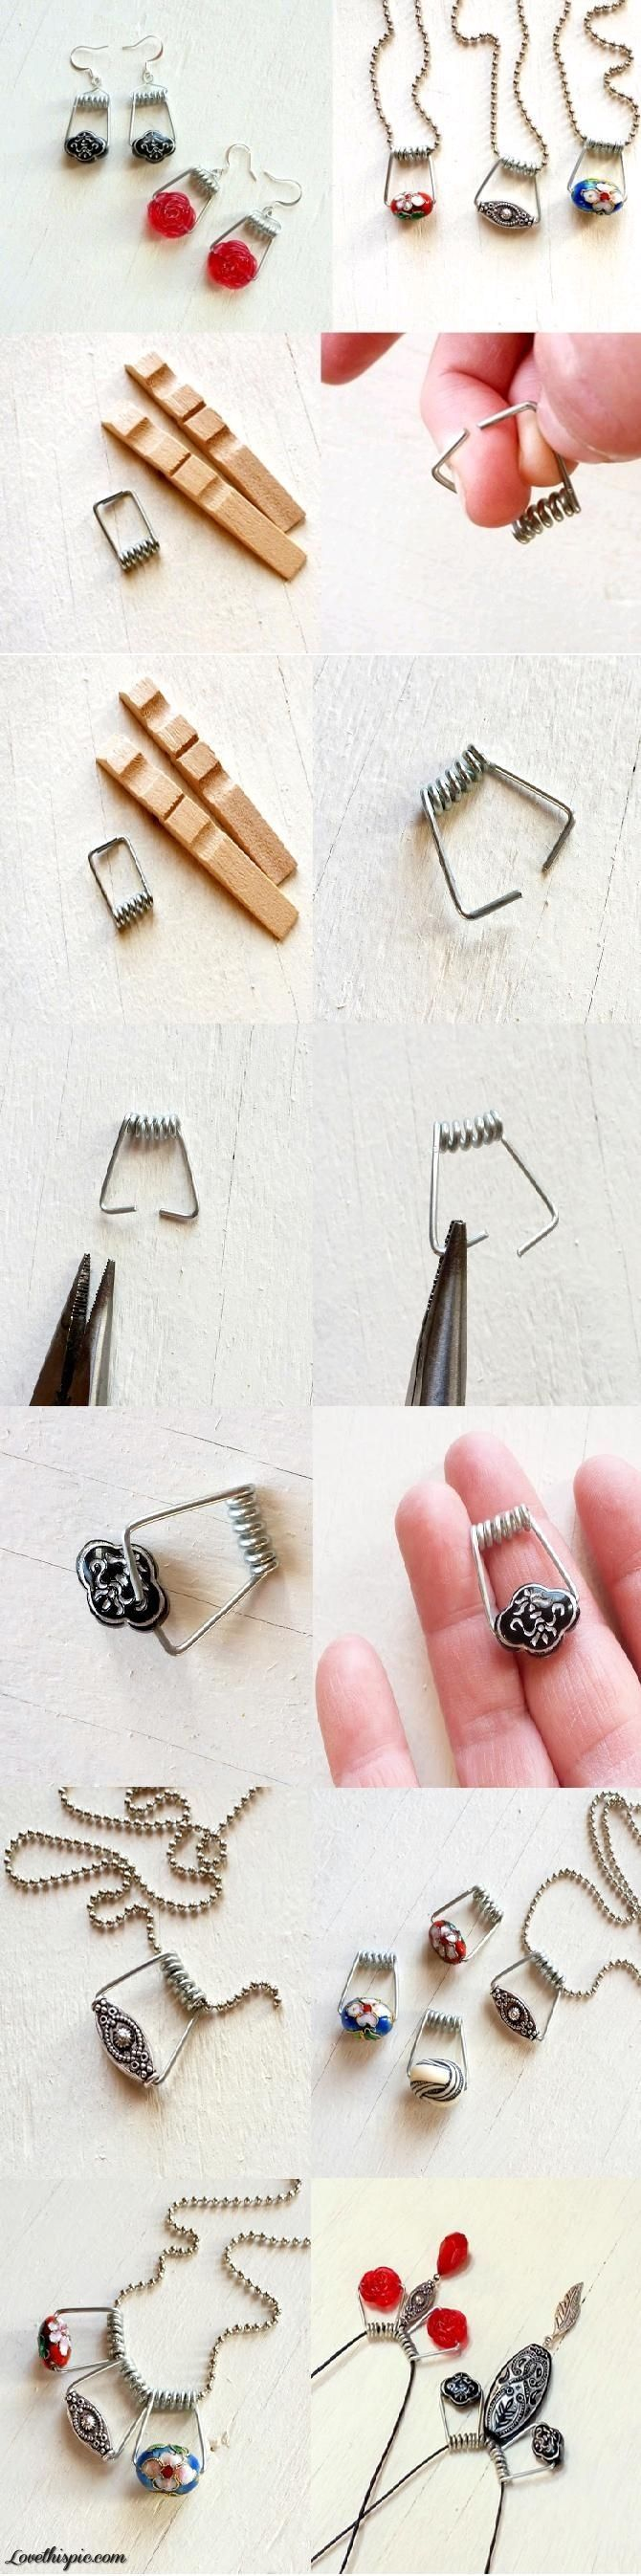 DIY jewelry diy crafts craft ideas... Genius!